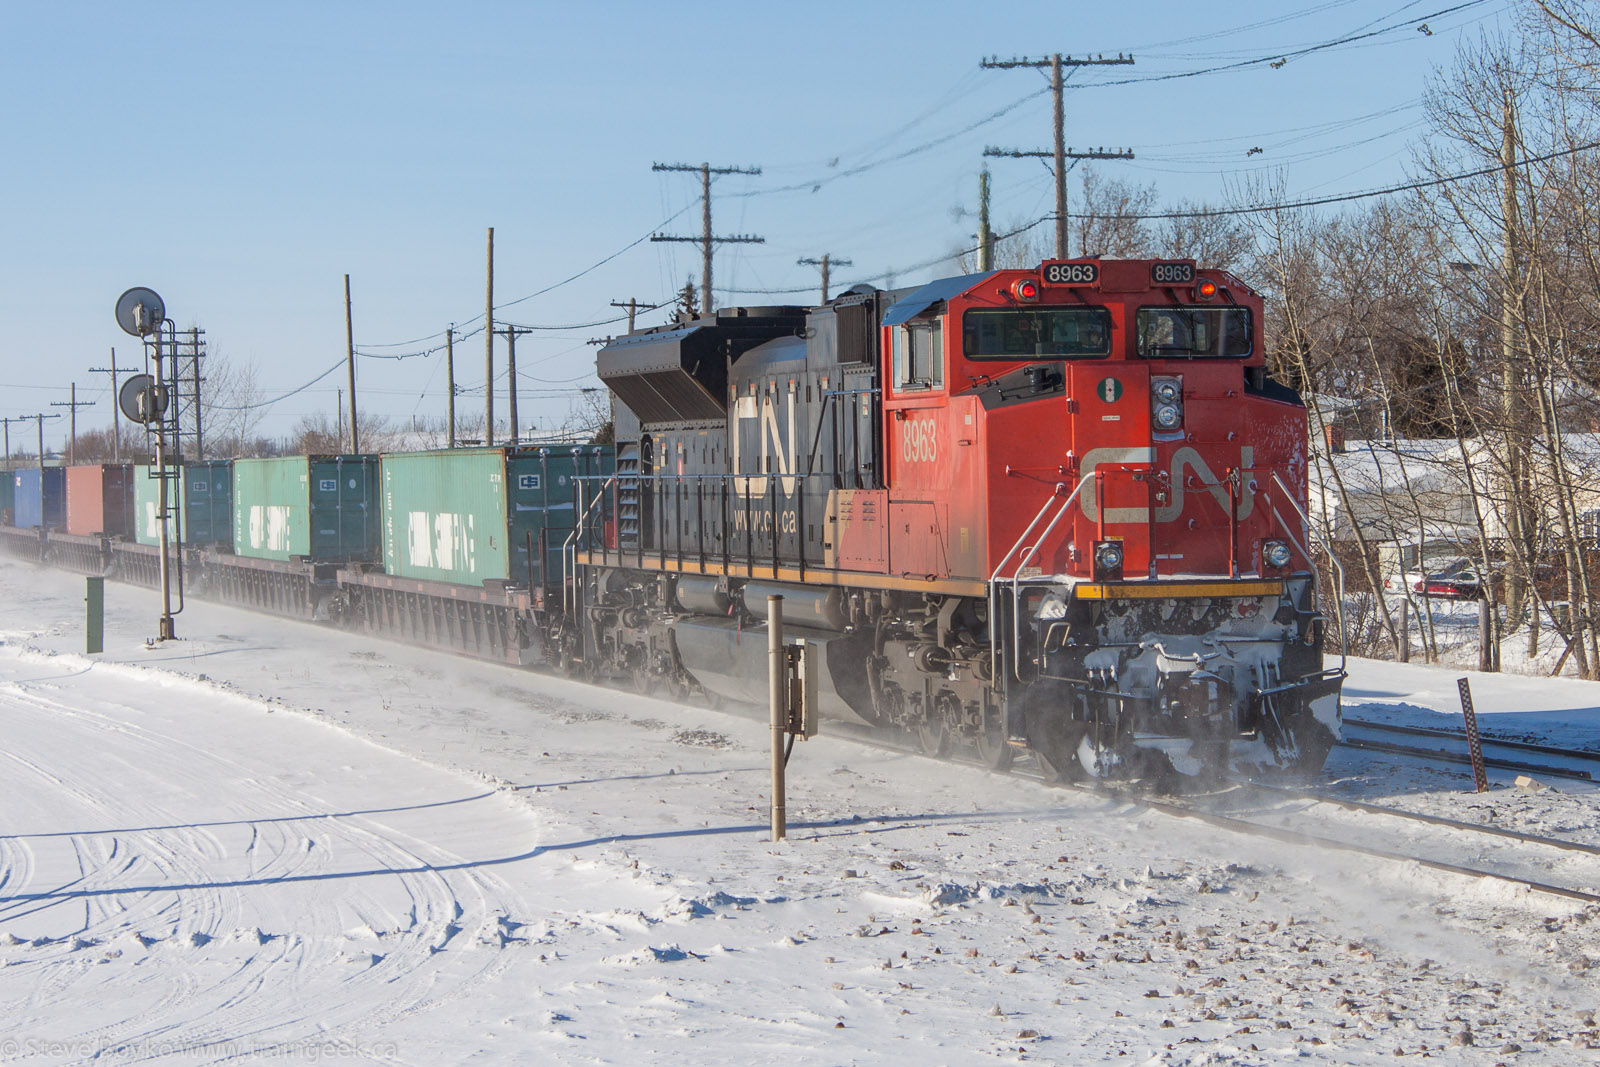 CN 8963 in Winnipeg, MB 2013/01/17